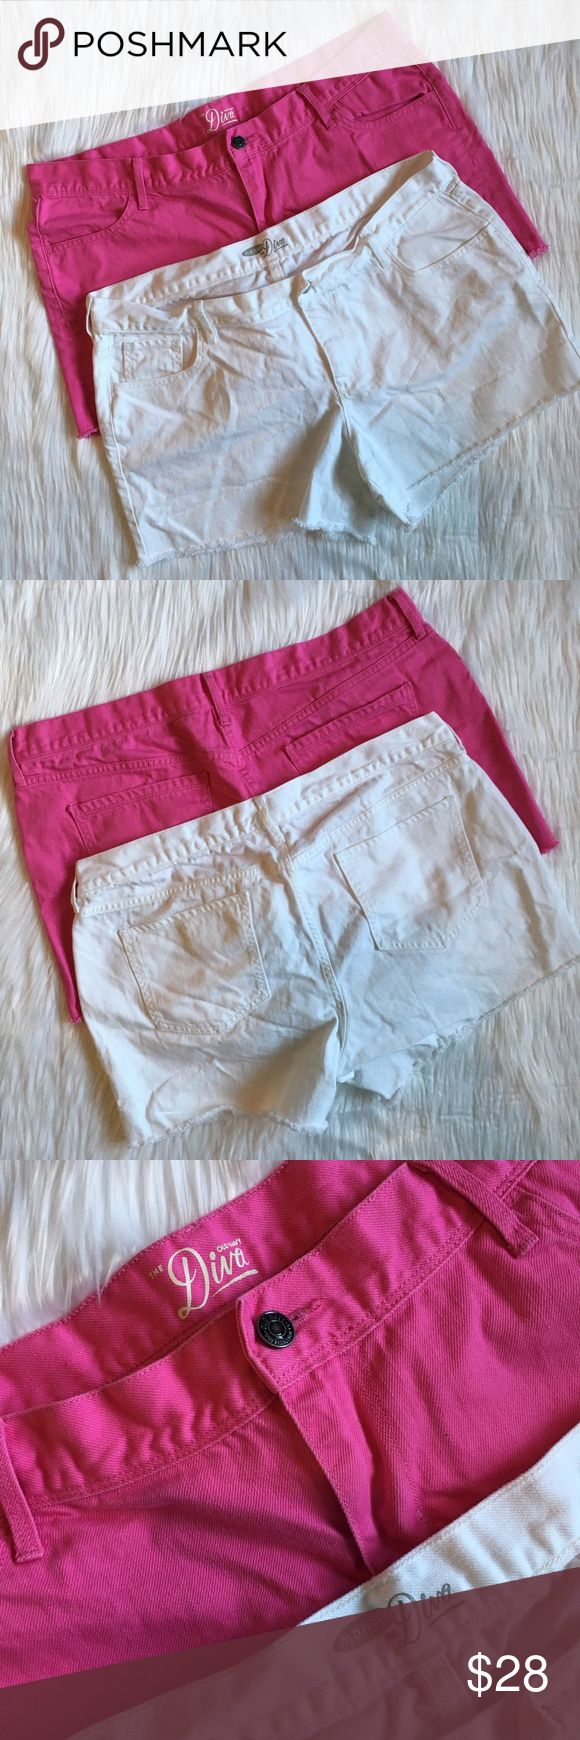 Old Navu 'The Diva' Hot Pink & White Shorts lot of two old navy 'the diva' shorts. one pair in hot pink and one pair in white. mid rise fit with a manufactured raw hem. perfect for summer! both pairs are in new condition. comfortable and easy to move in! marked a size 16, measurements: waist (across)- 18 inches / rise- 10 inches / inseam- 4 inches. 10% off bundles of 2 items and 15% off bundles of 3+ items. inventory box g. Old Navy Shorts Jean Shorts